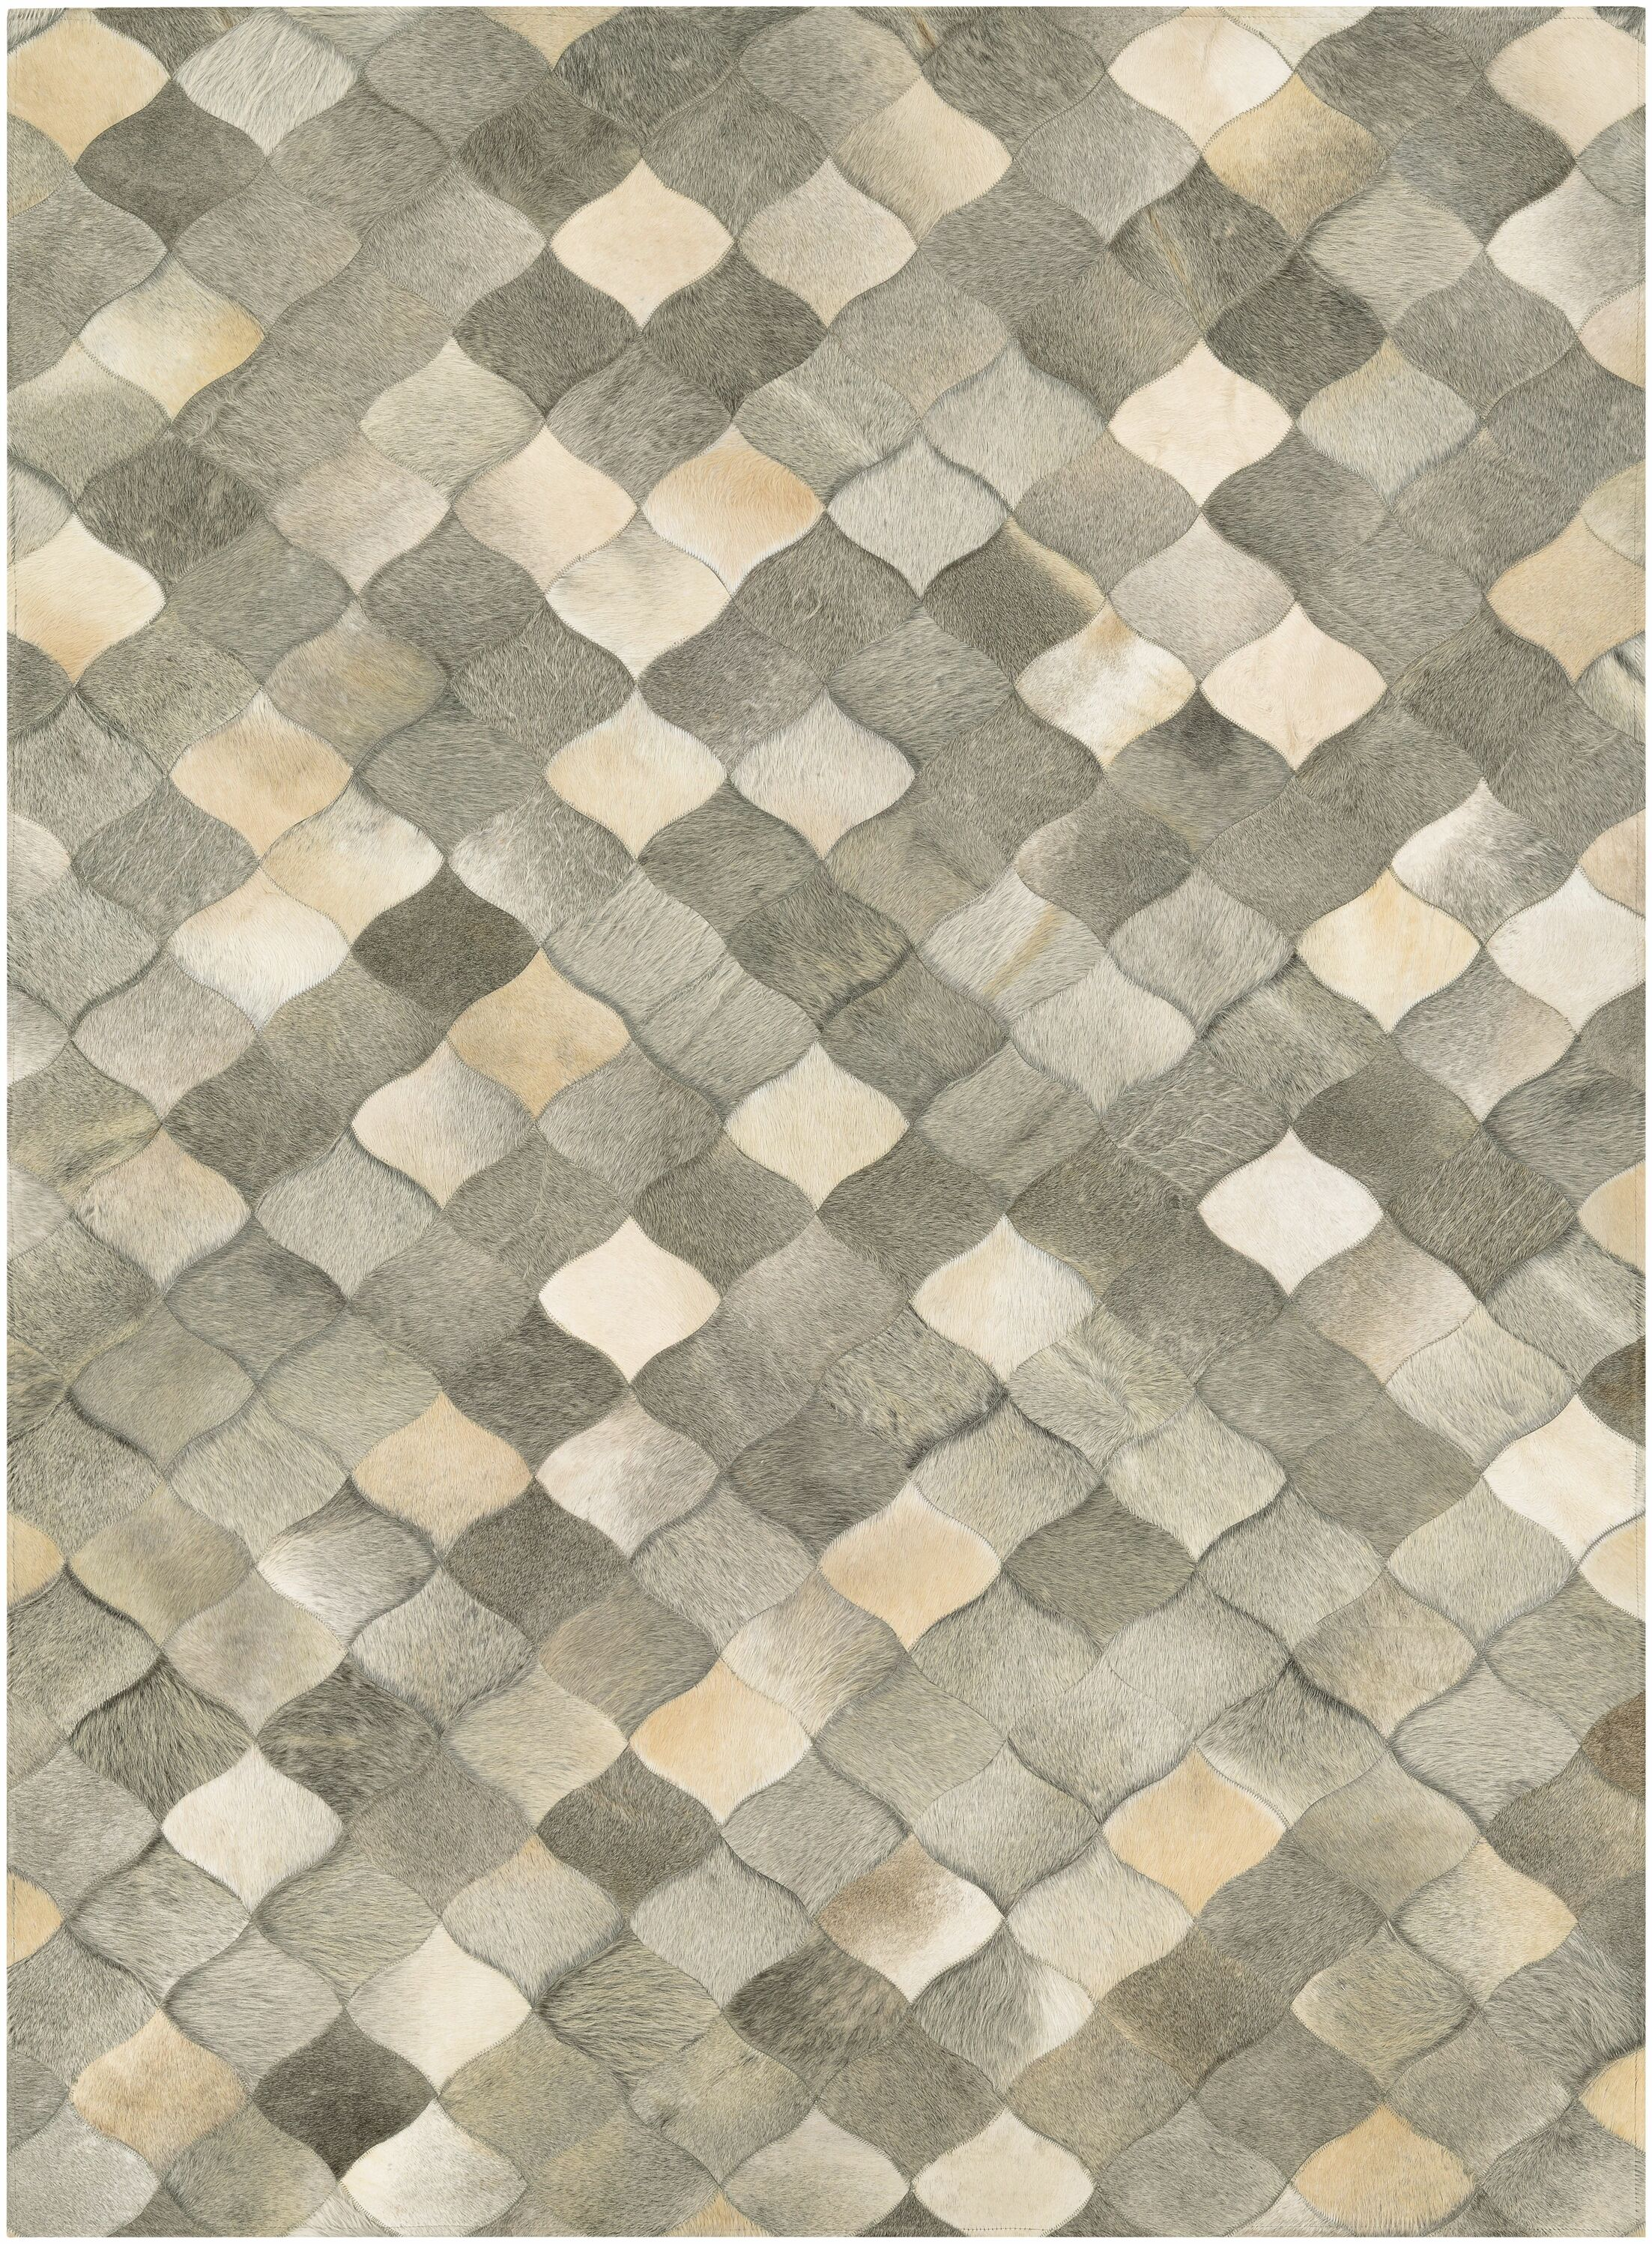 Willis Hand-Woven Ivory/Gray Area Rug Rug Size: 8' x 11'